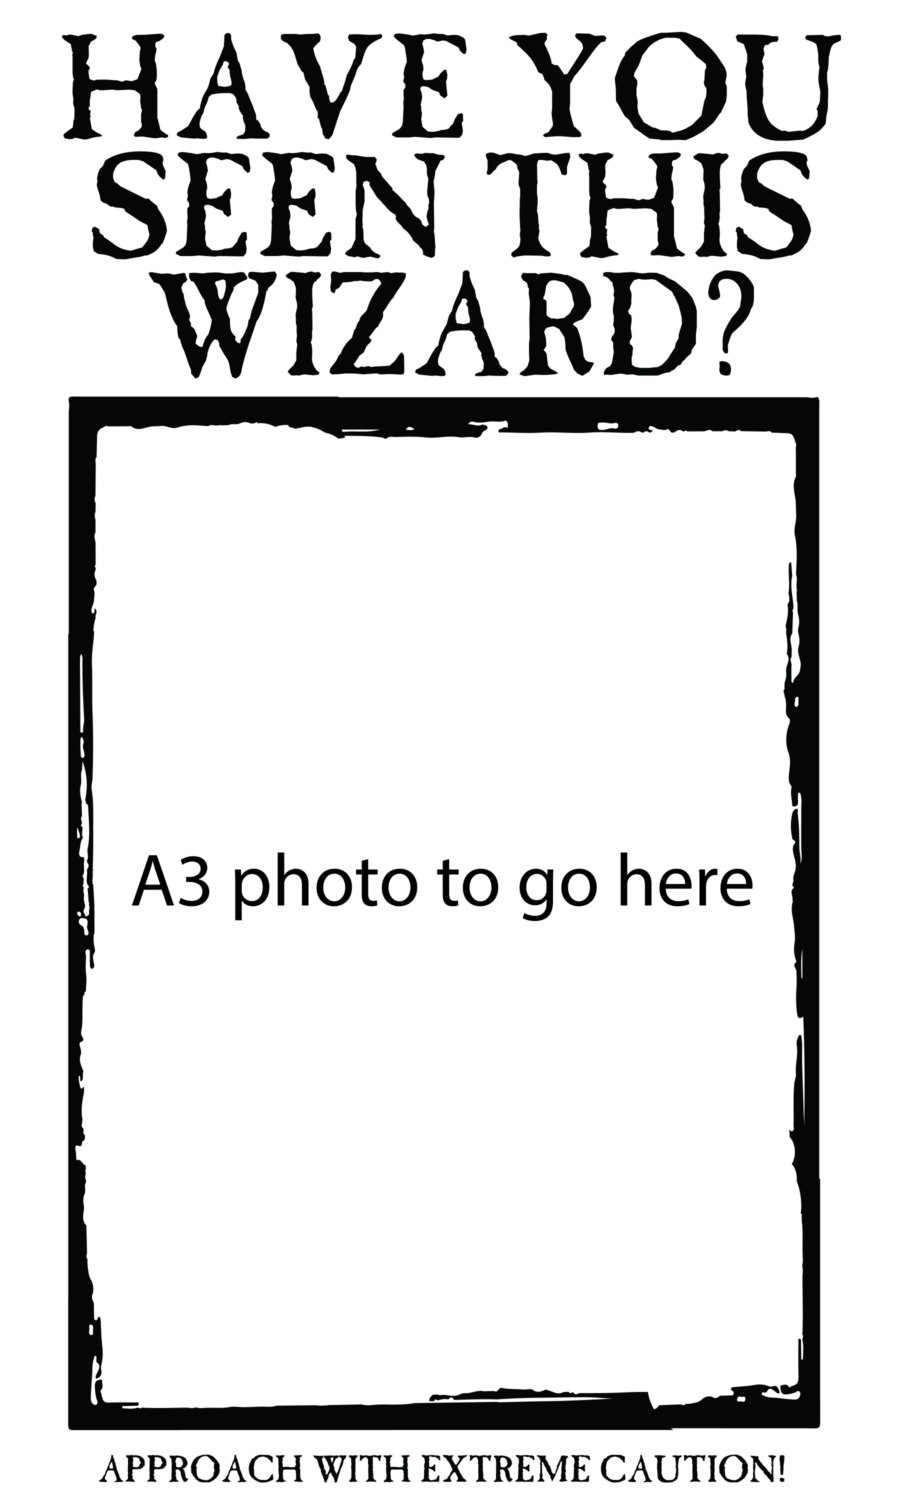 graphic regarding Have You Seen This Wizard Printable named Comprise On your own Noticed This Wizard Preferred Poster Sticker, Wizard Sought after Sticker